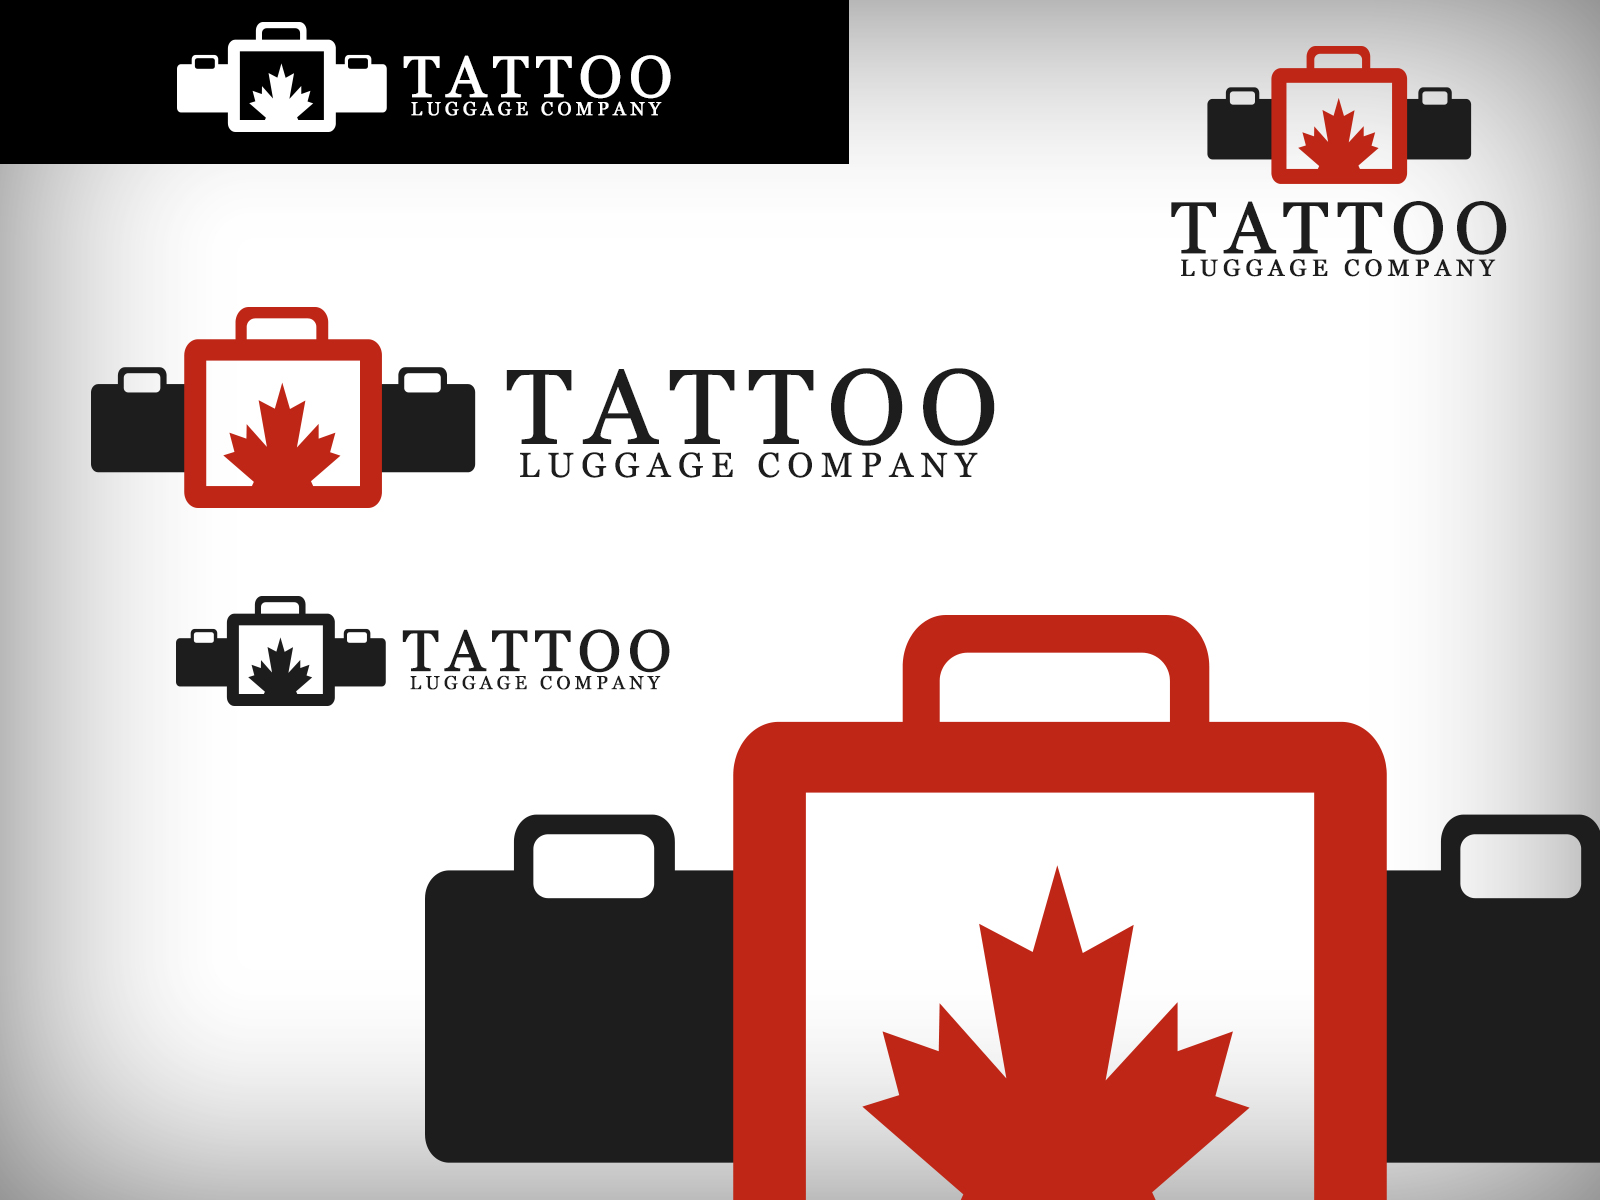 Logo Design by Virgilio Pineda III - Entry No. 178 in the Logo Design Contest Artistic Logo Design for Tattoo Luggage Company.